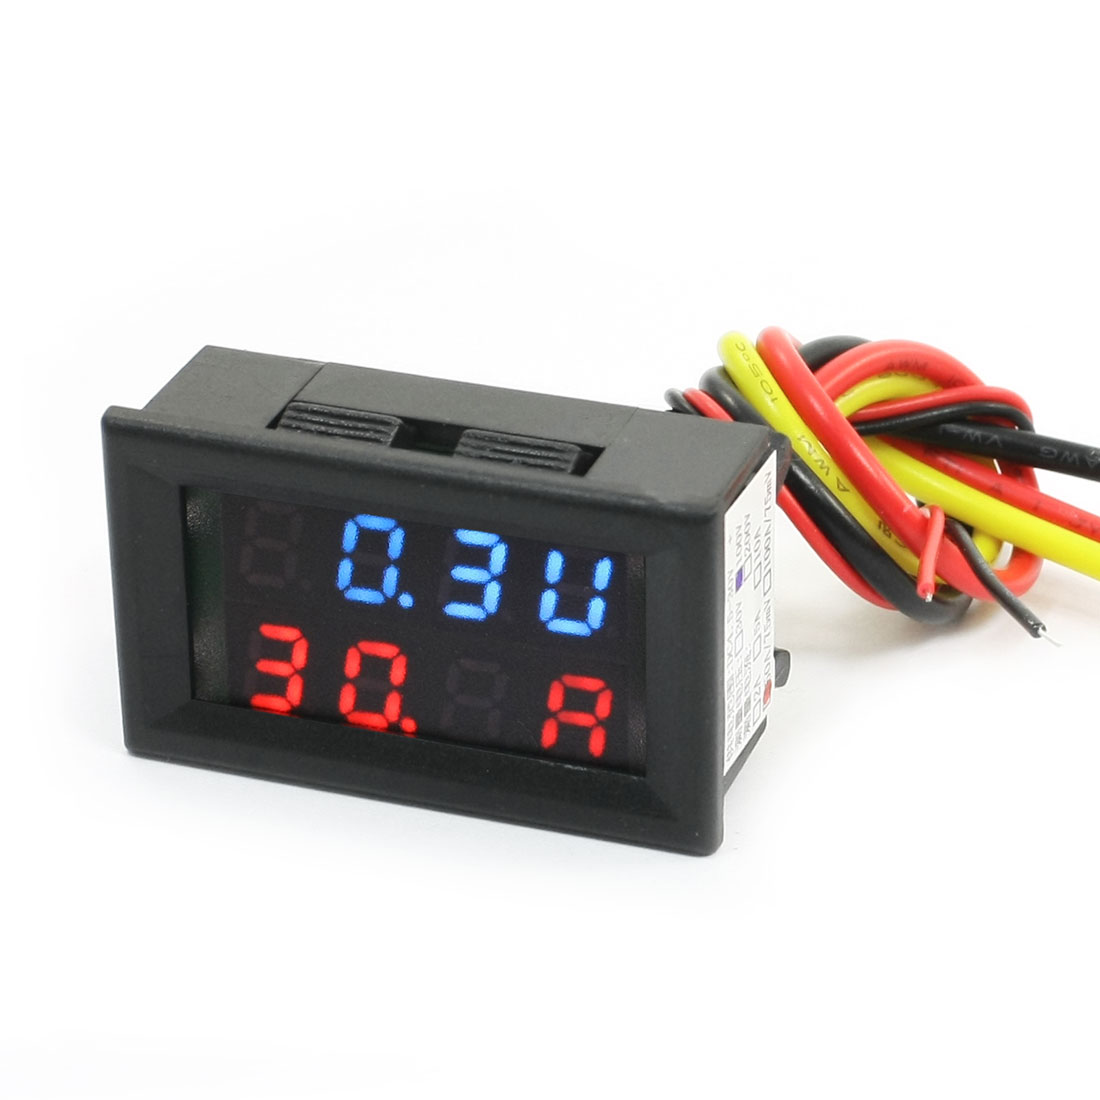 Red Blue LED Display Voltmeter Ammeter 0-100V 50A/75mV Volt Measuring